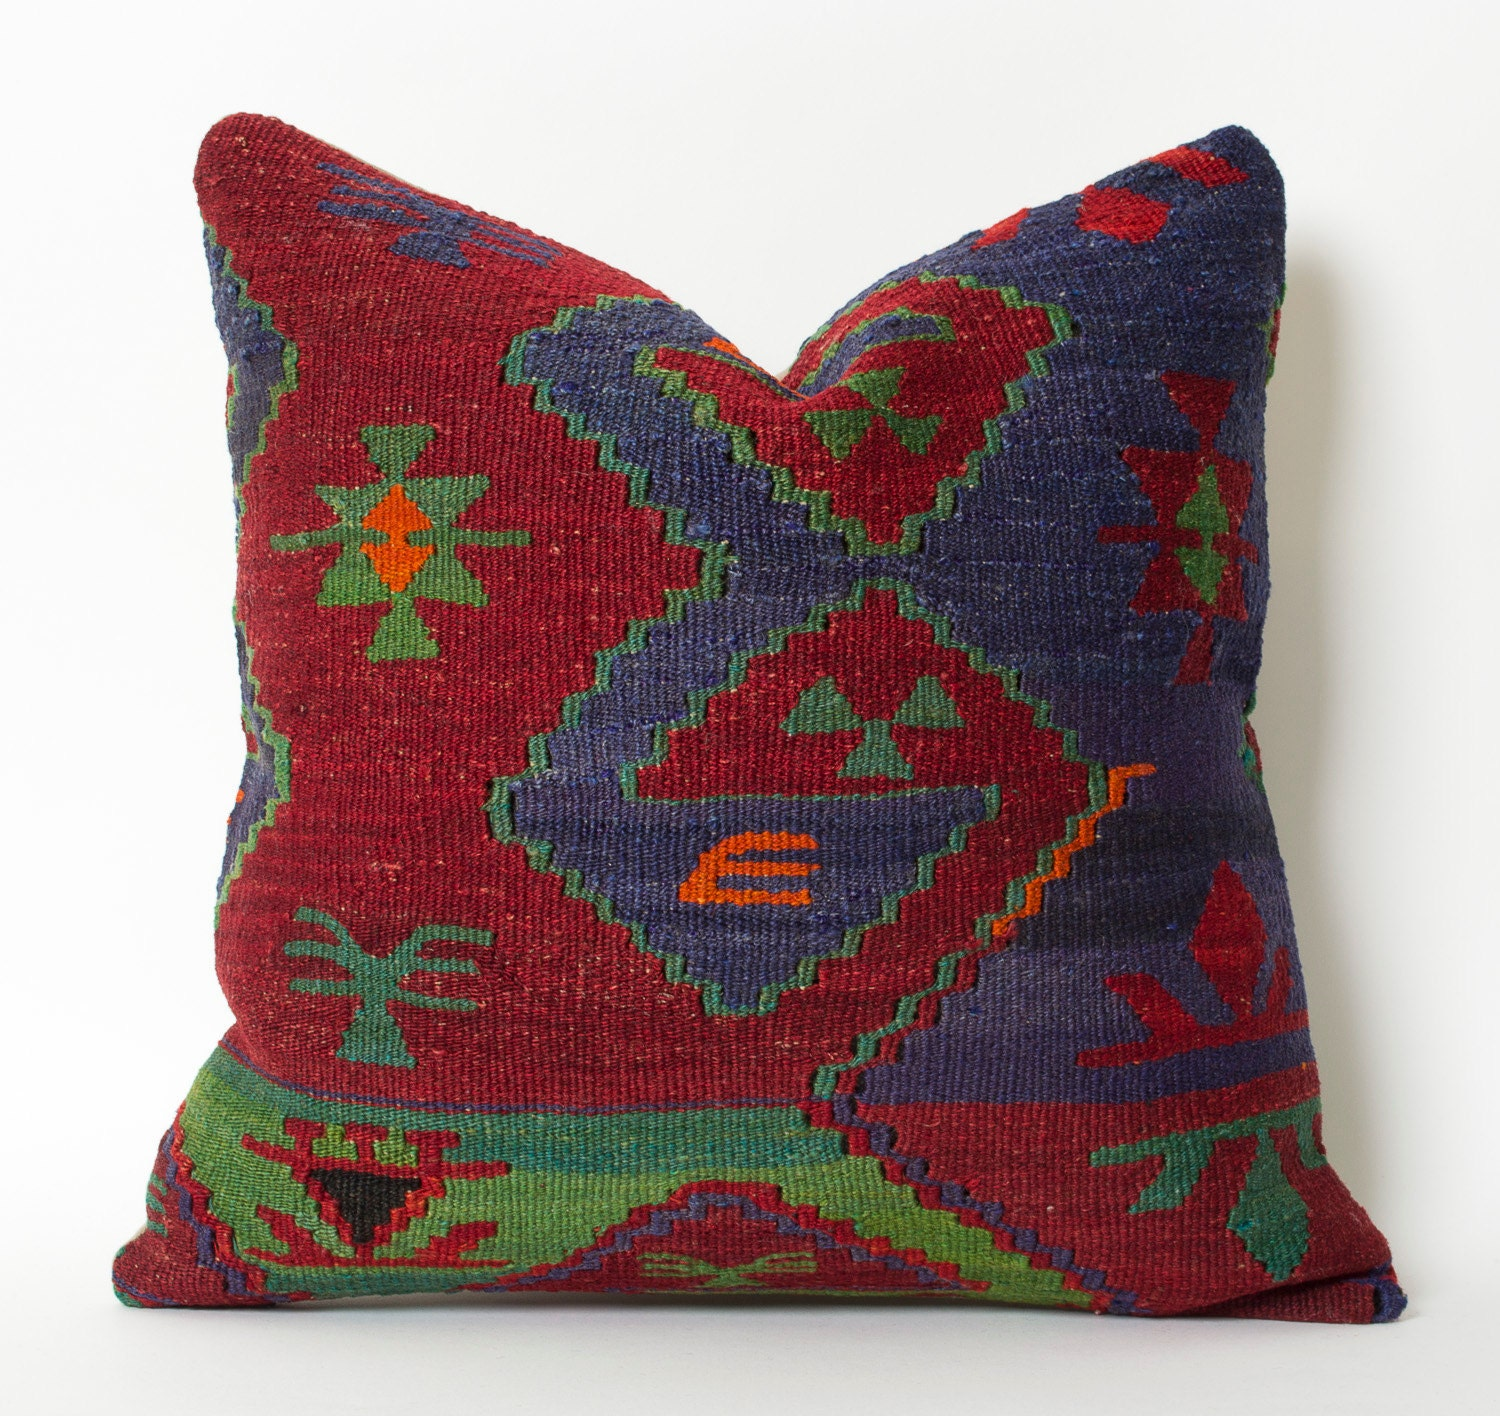 Southwestern Throw Pillows For Couch : Kilim pillow shabby chic southwestern throw pillows native